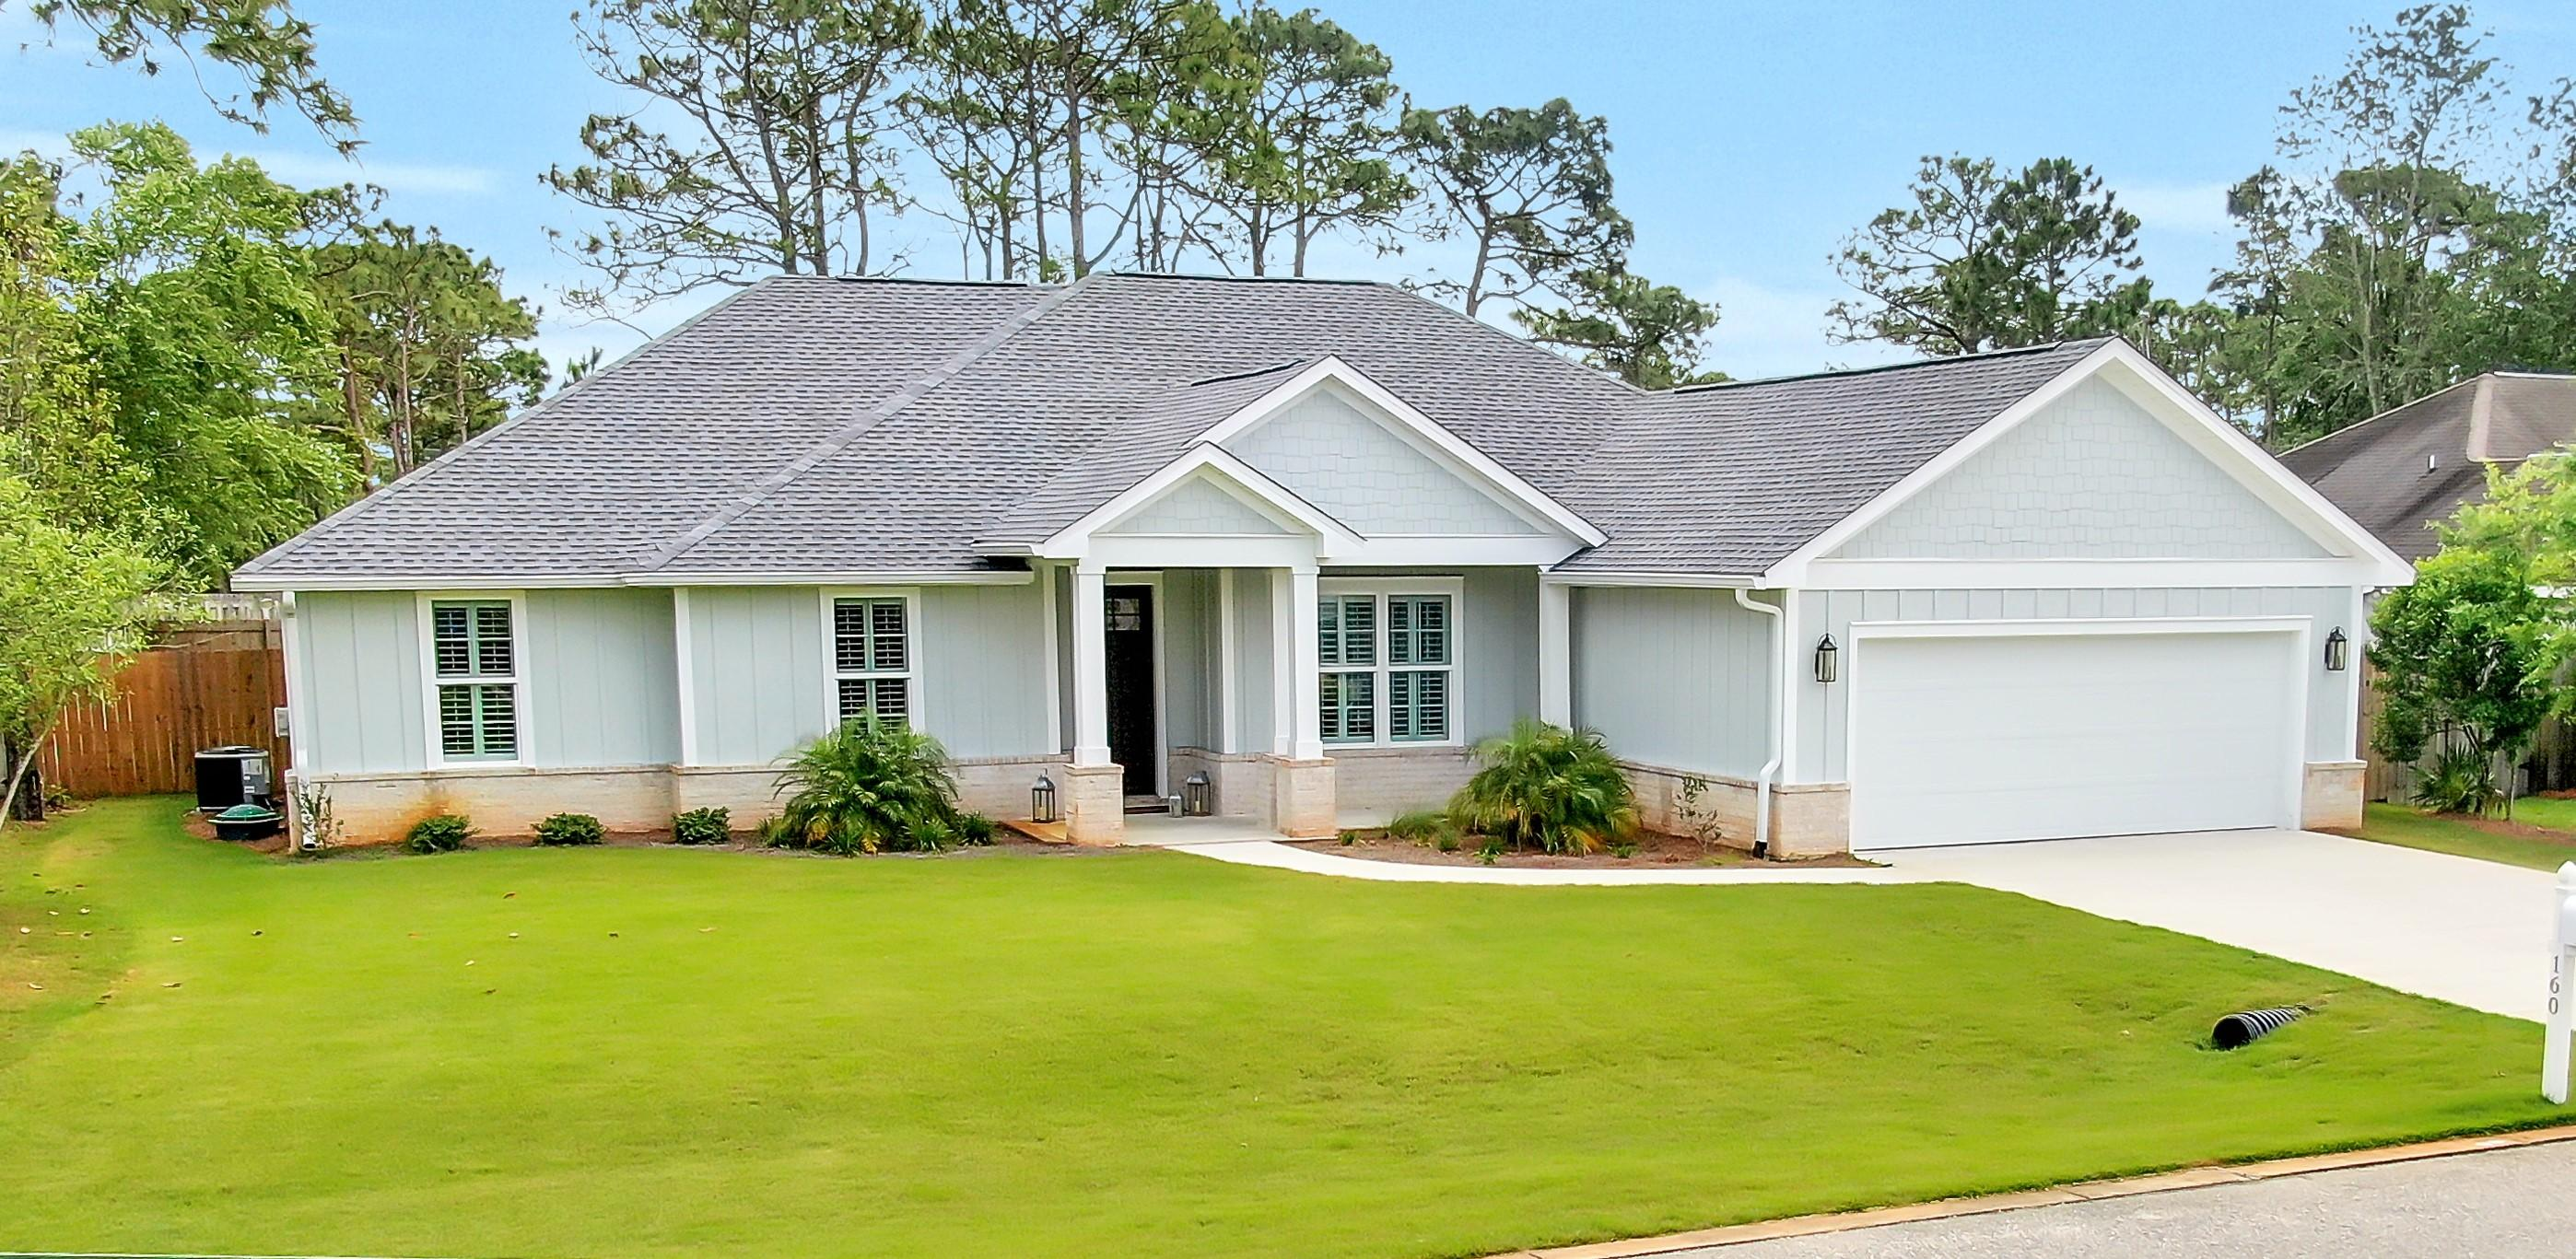 Photo of home for sale at 160 Pelican Bay, Santa Rosa Beach FL